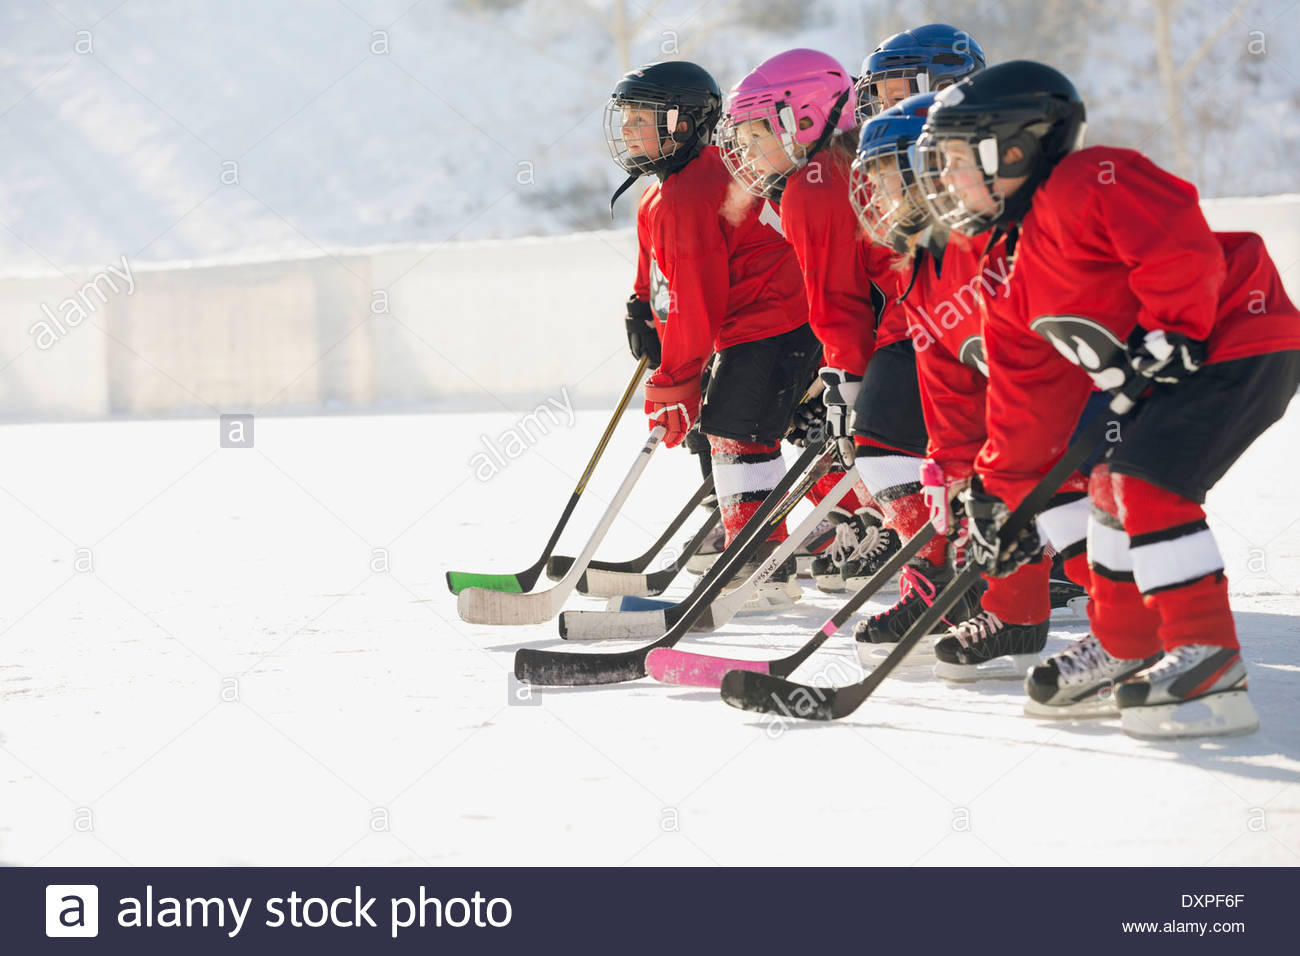 Ice hockey team standing in a row on ice rink - Stock Image